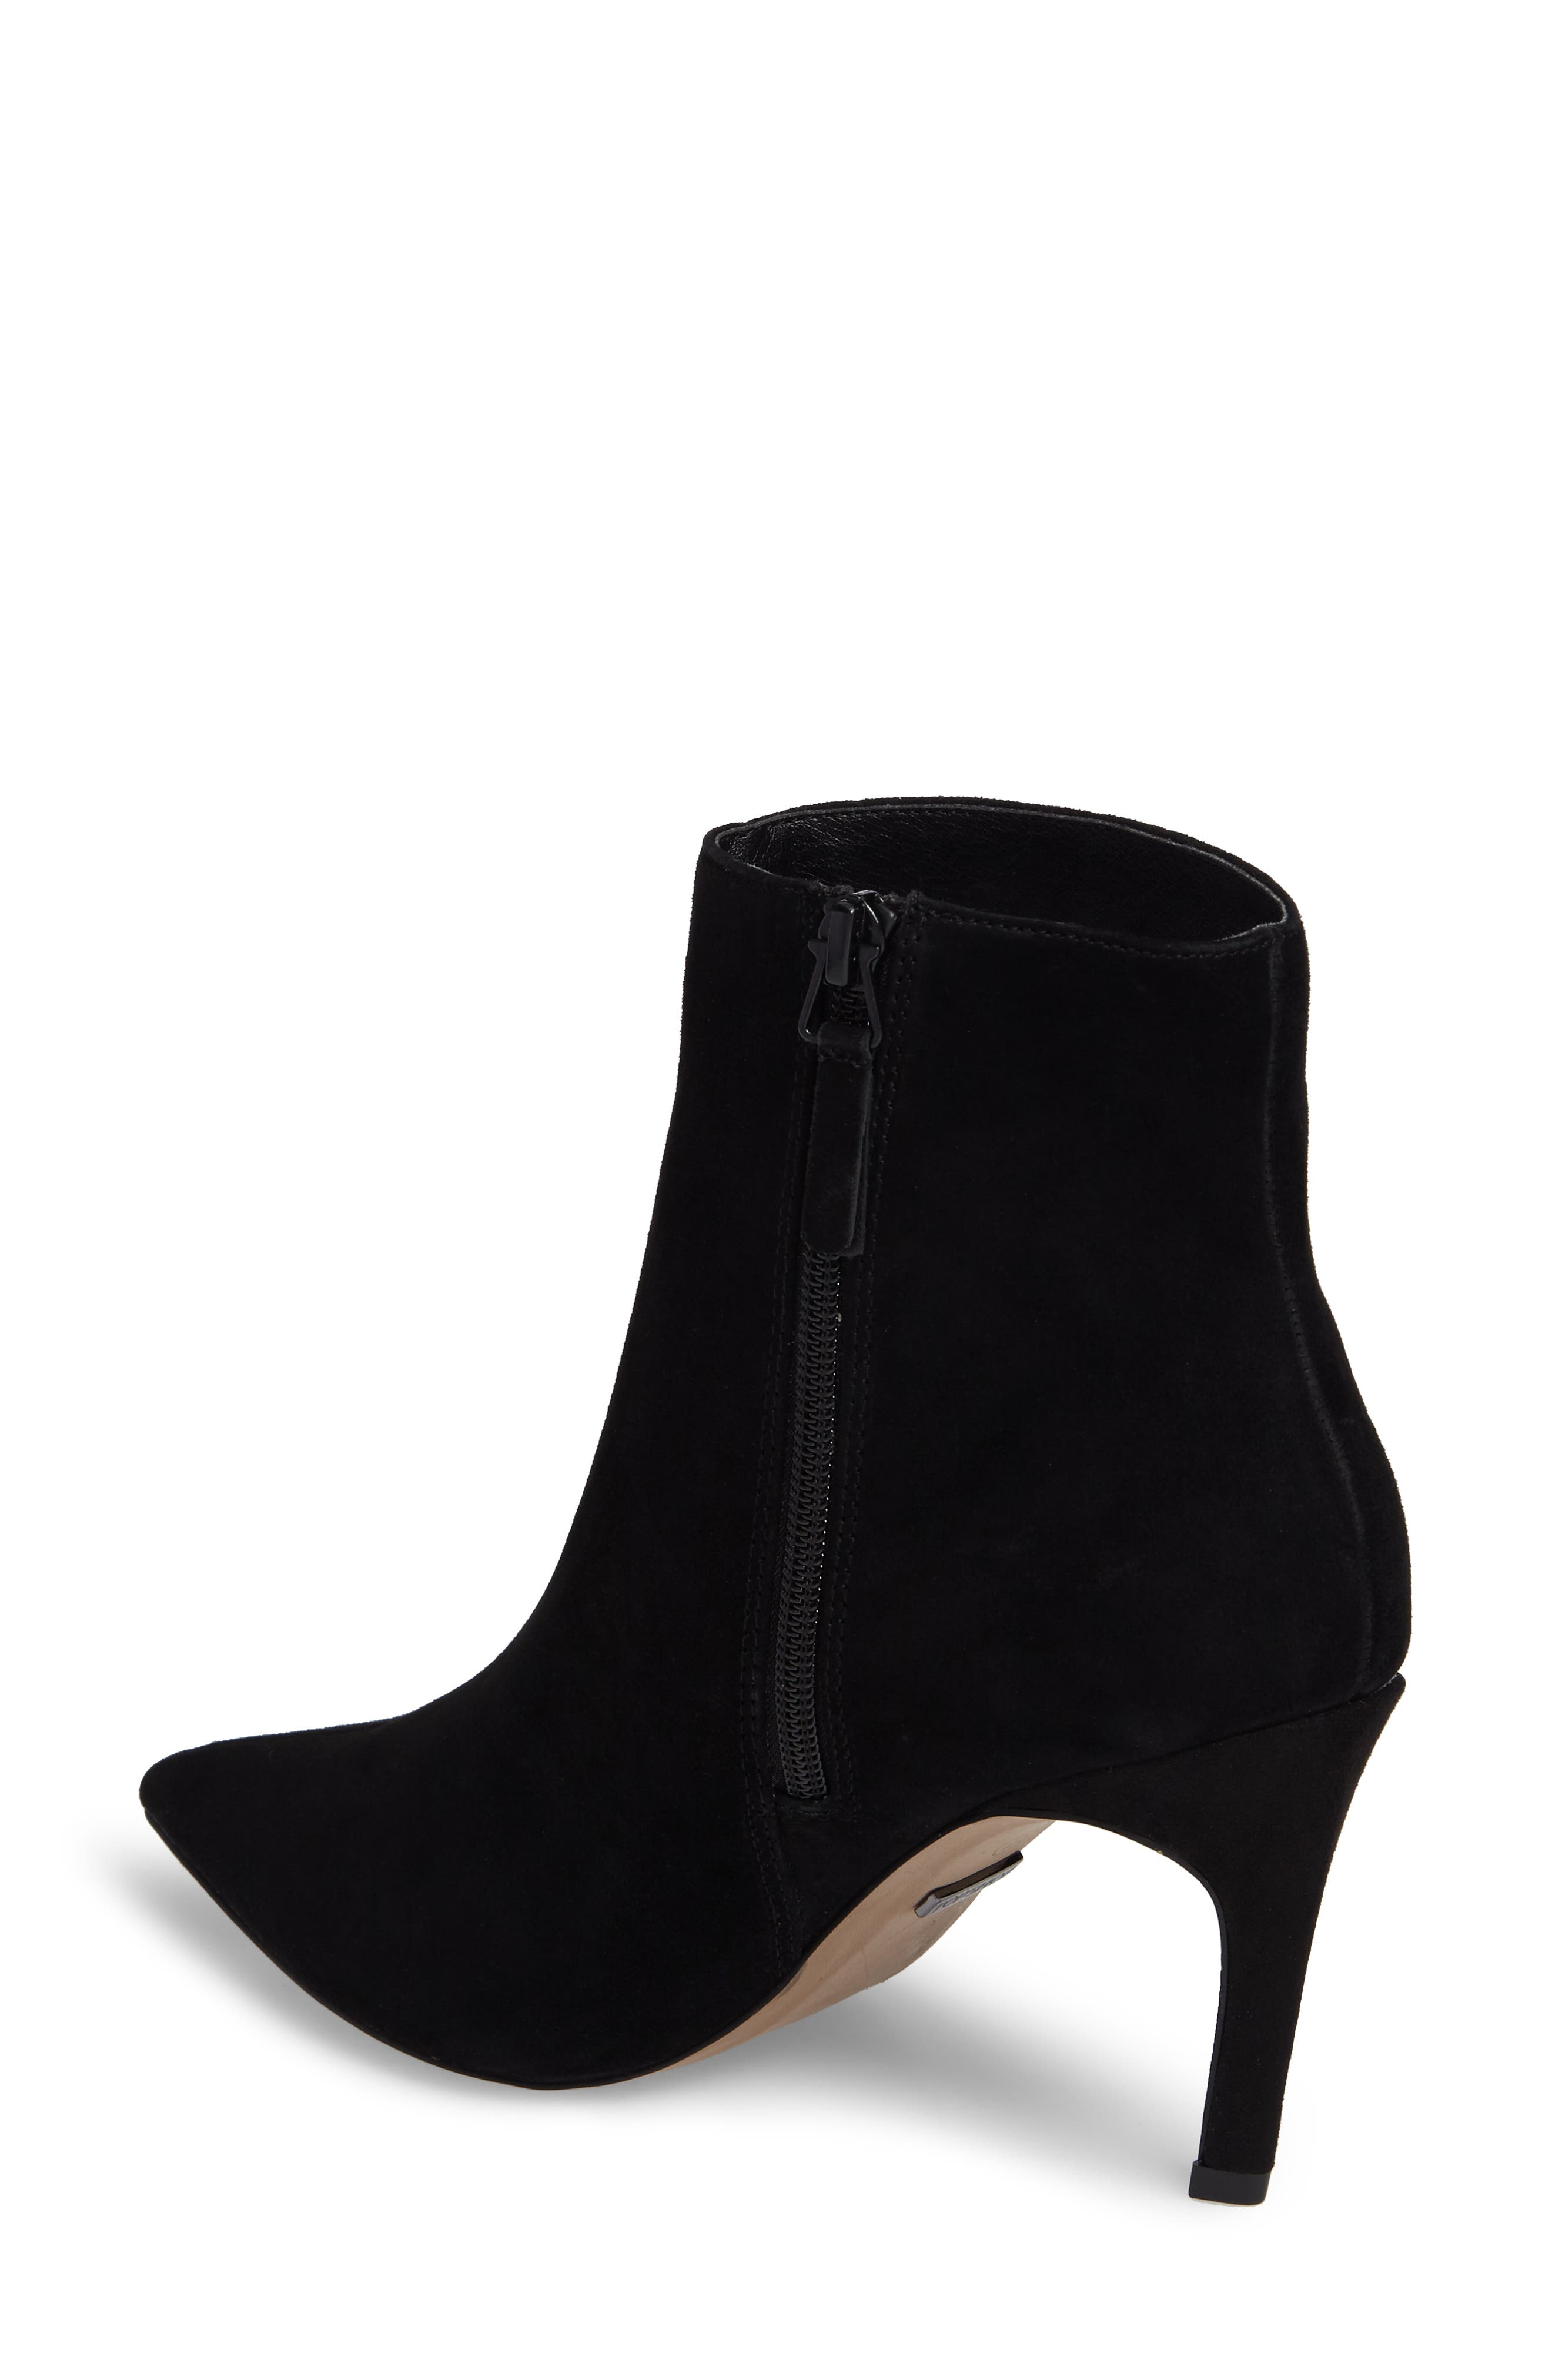 Hot Toddy Pointy Toe Boot,                             Alternate thumbnail 2, color,                             Black